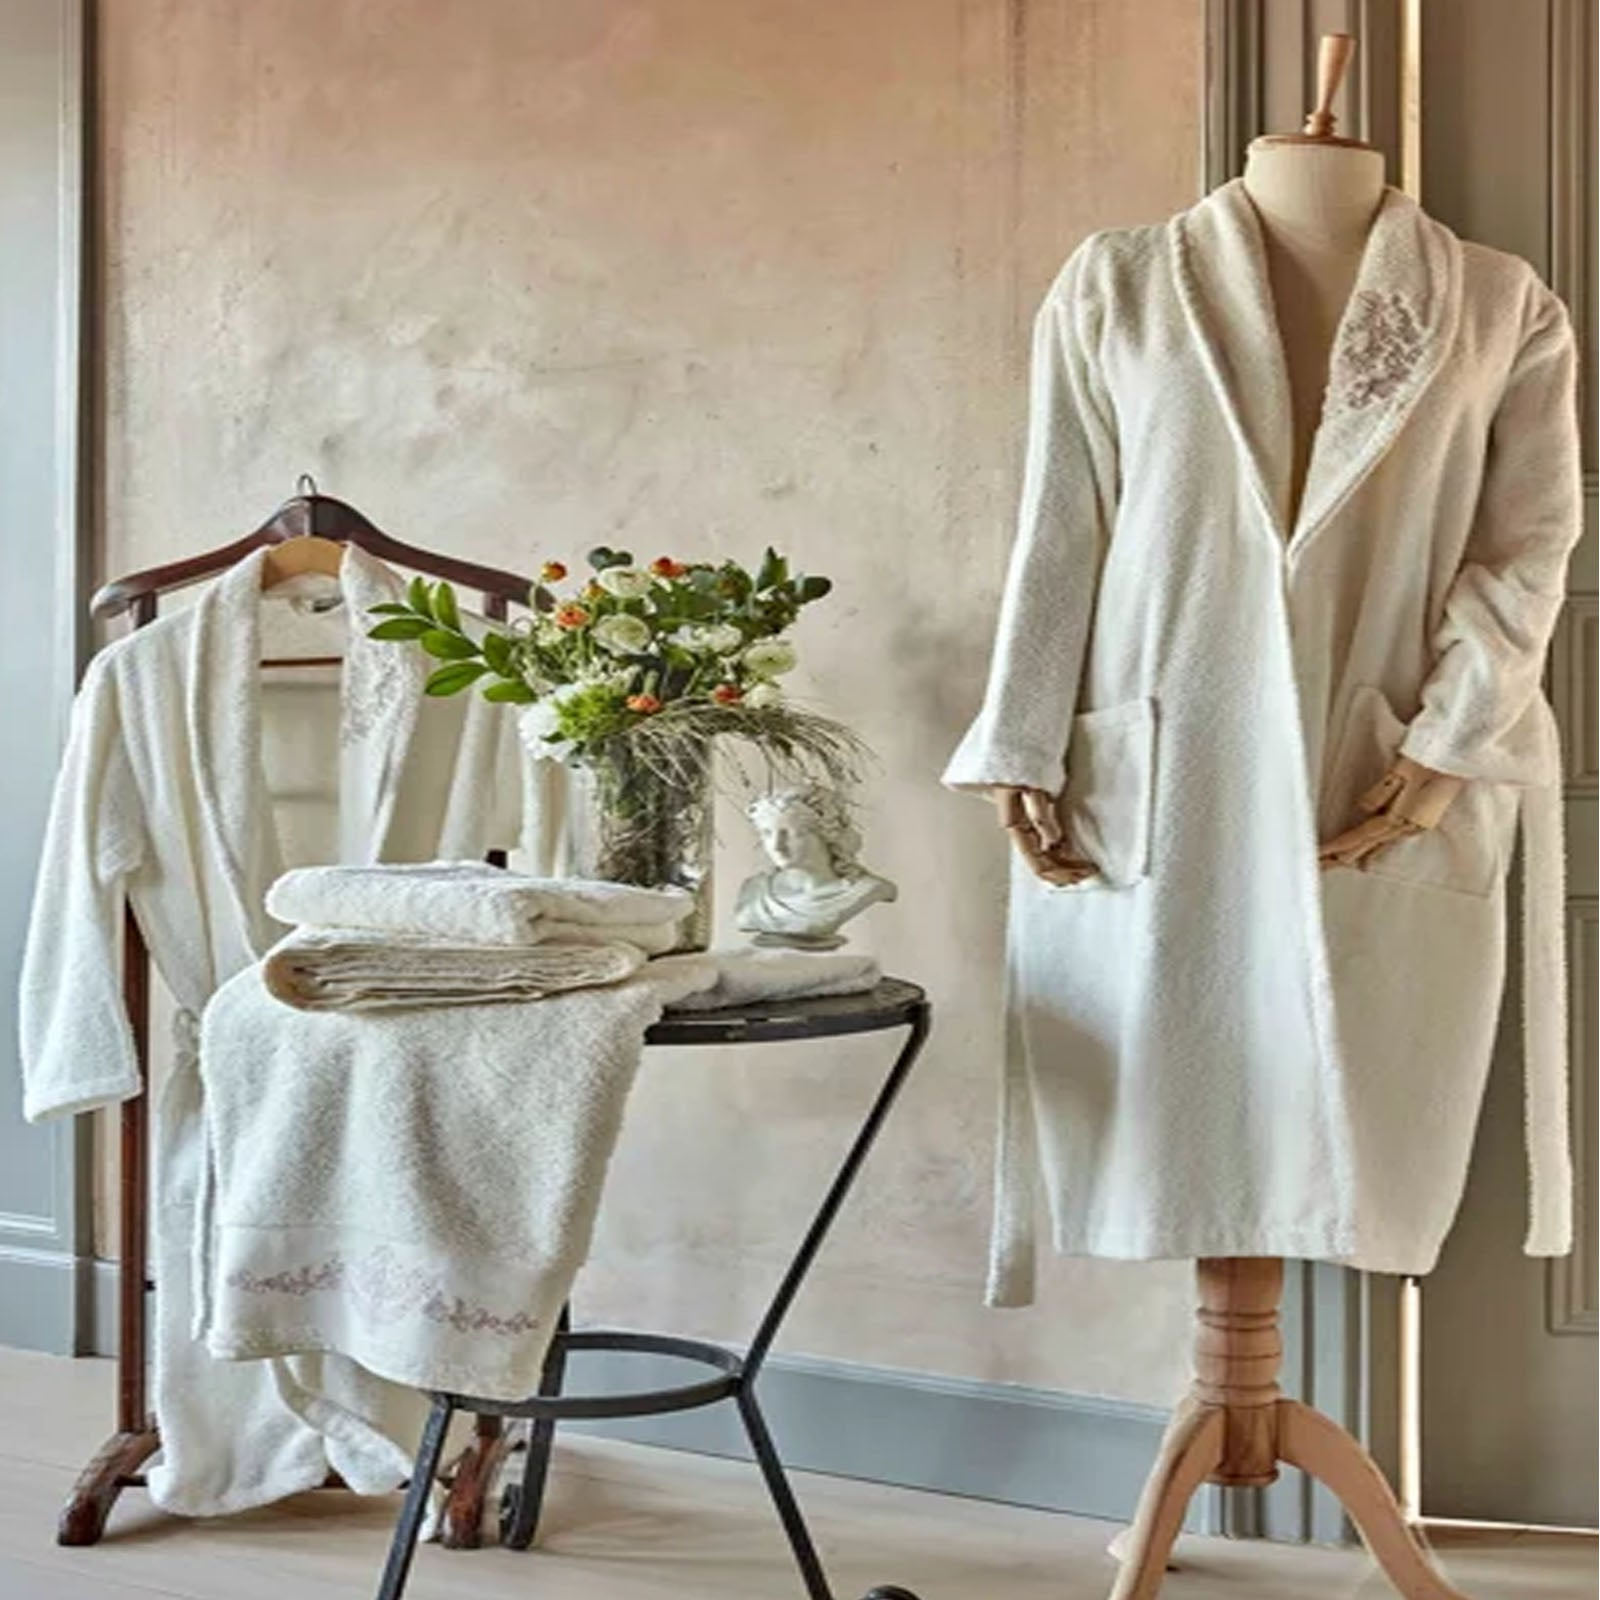 Desire Embroidered Offwhite Beige Bathrobe Set 3 Pieces 200.15.01.0223